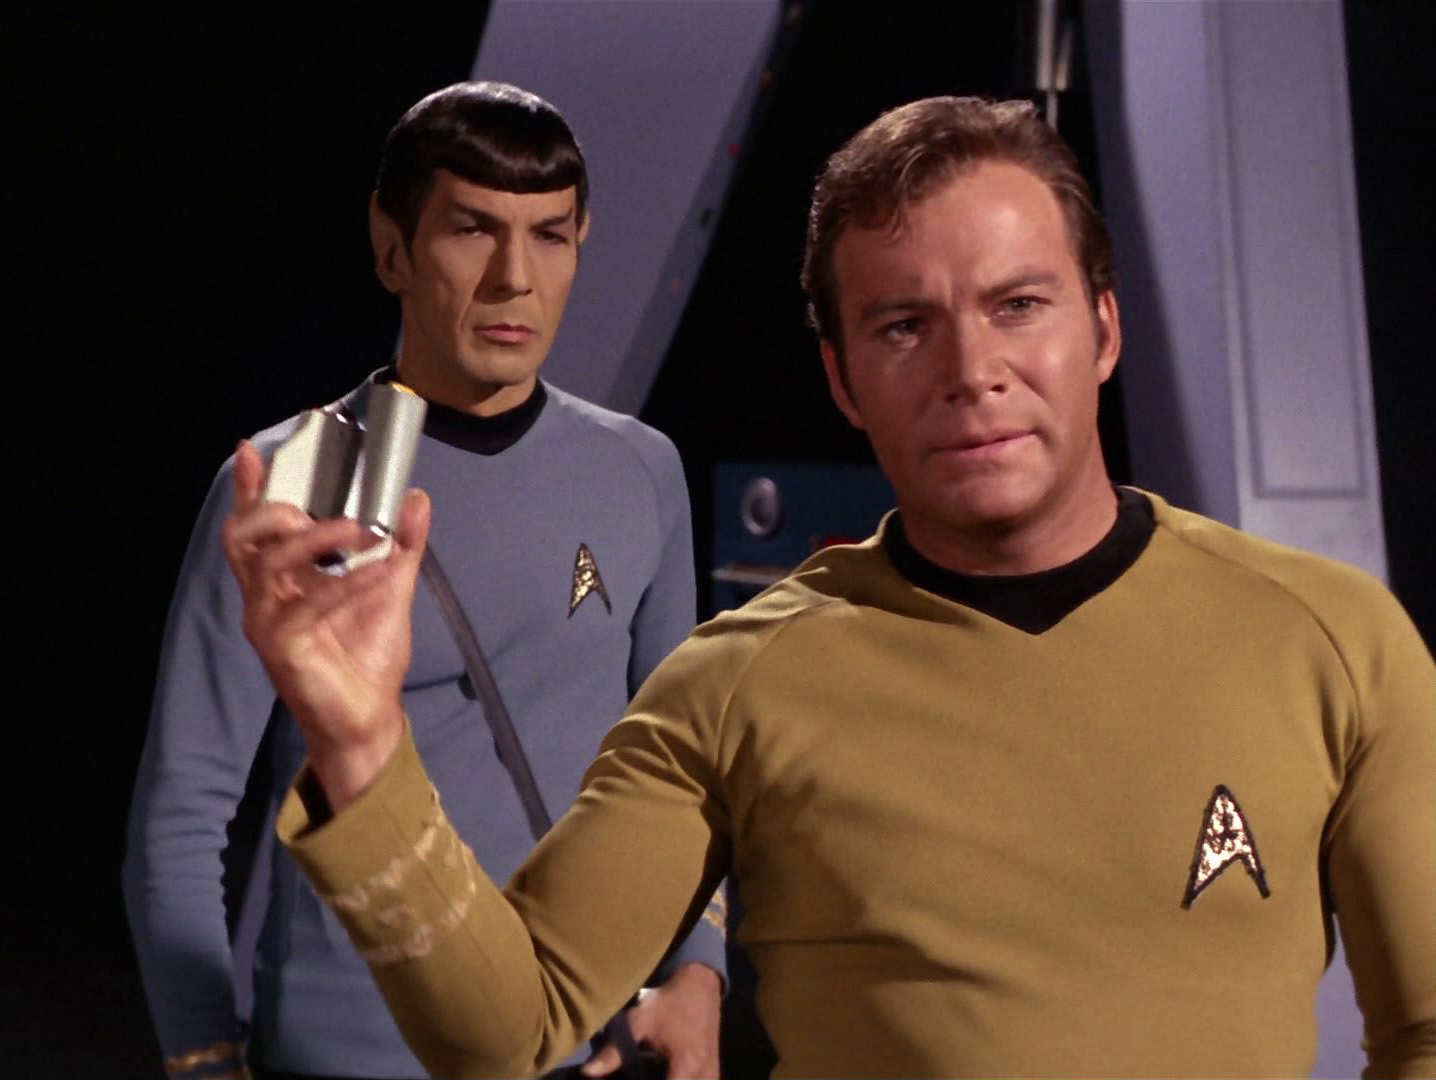 Star trek tos pictures Animal Pictures and Facts - National Geographic